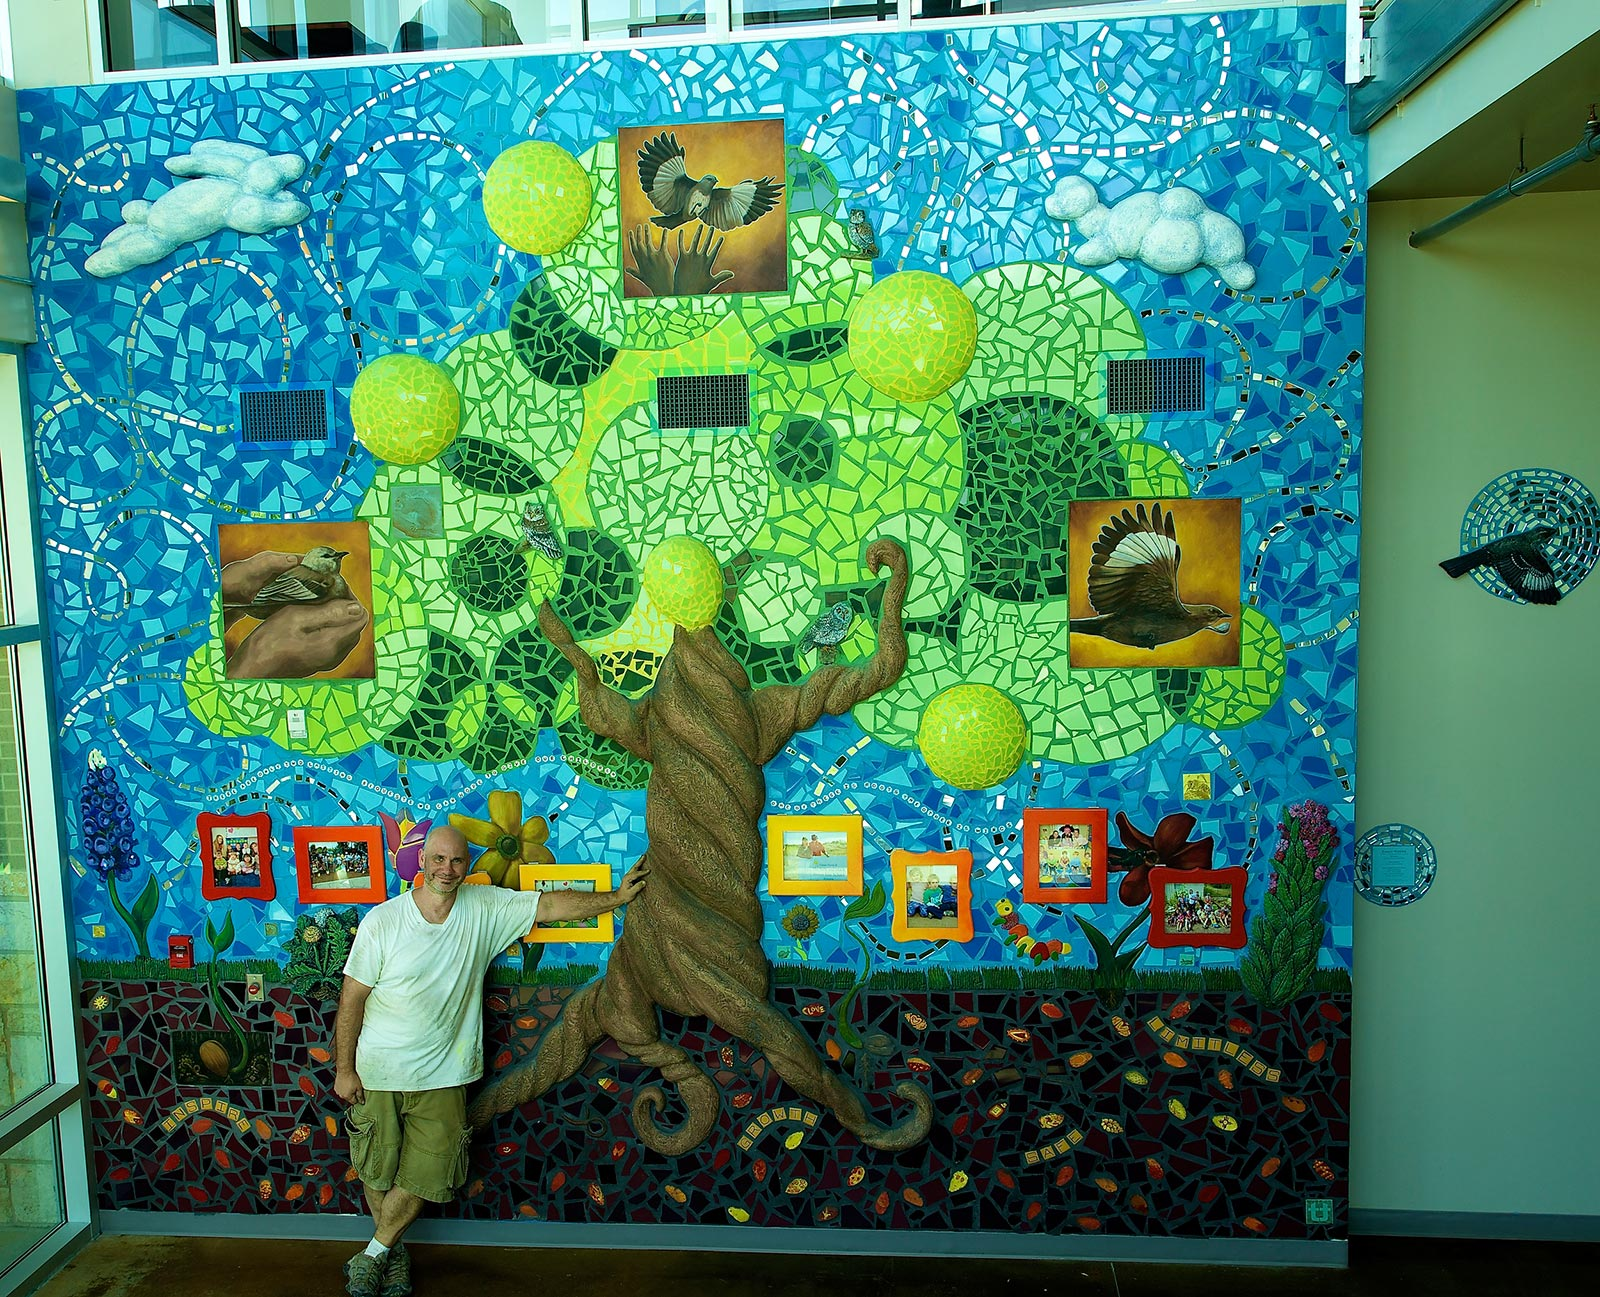 Renowned artist TRACY VAN DUINEN creates an original mosaic masterpiece for The Rise School of Austin sponsored by DEPT. OF CULTURE